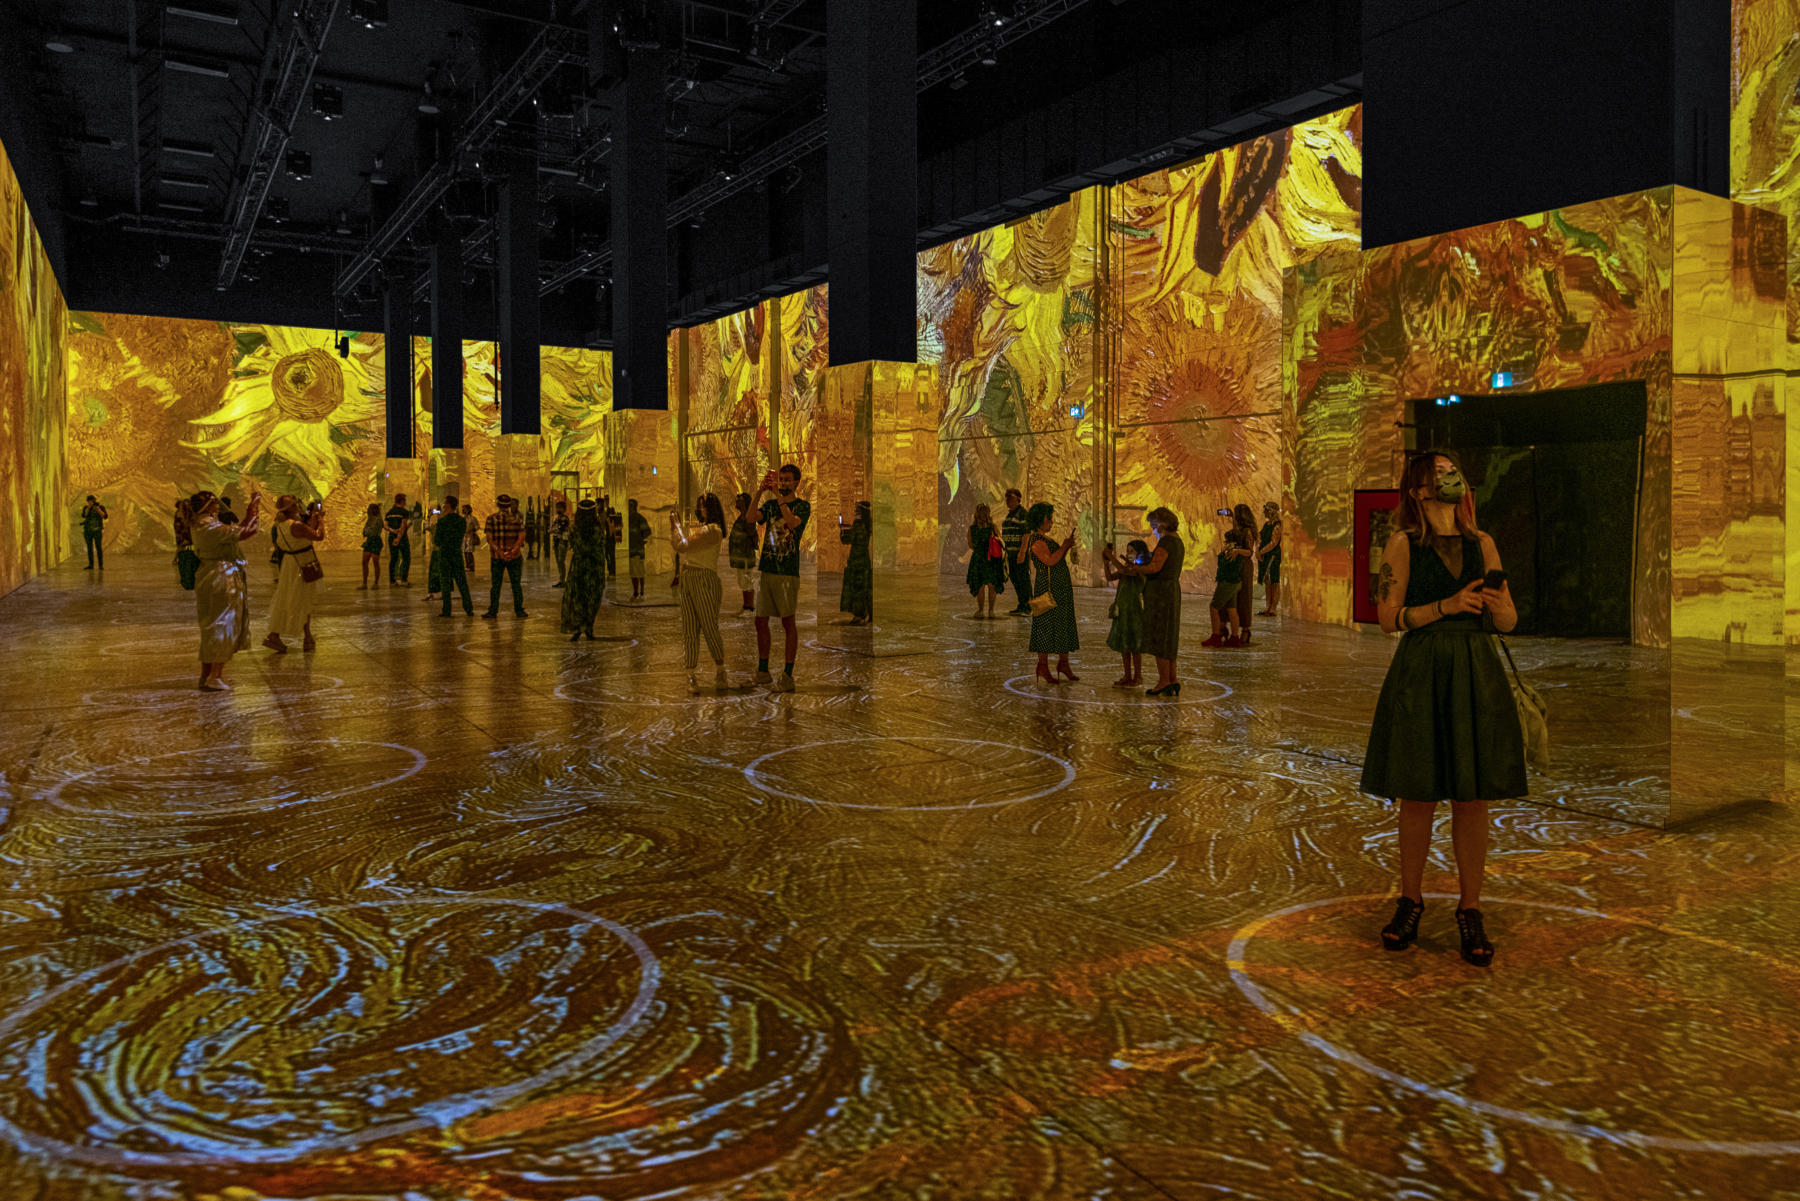 The Immersive Van Gogh exhibit is heading to San Antonio